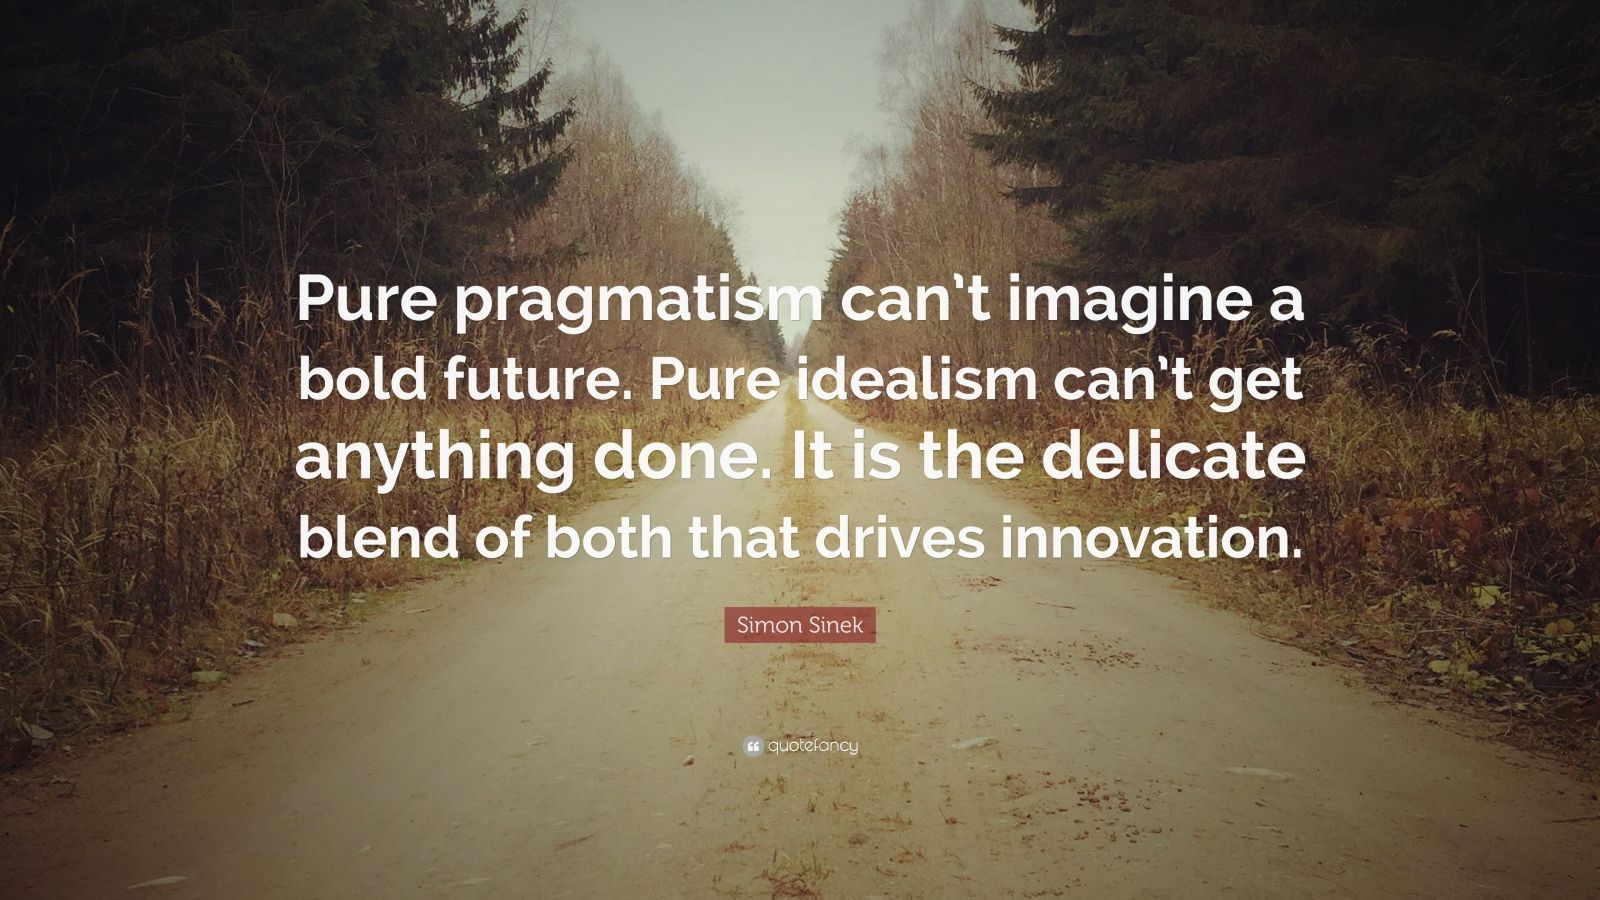 """Simon Sinek Quote: """"Pure pragmatism can't imagine a bold future. Pure idealism can't get anything done. It is the delicate blend of both that drives innovation."""""""